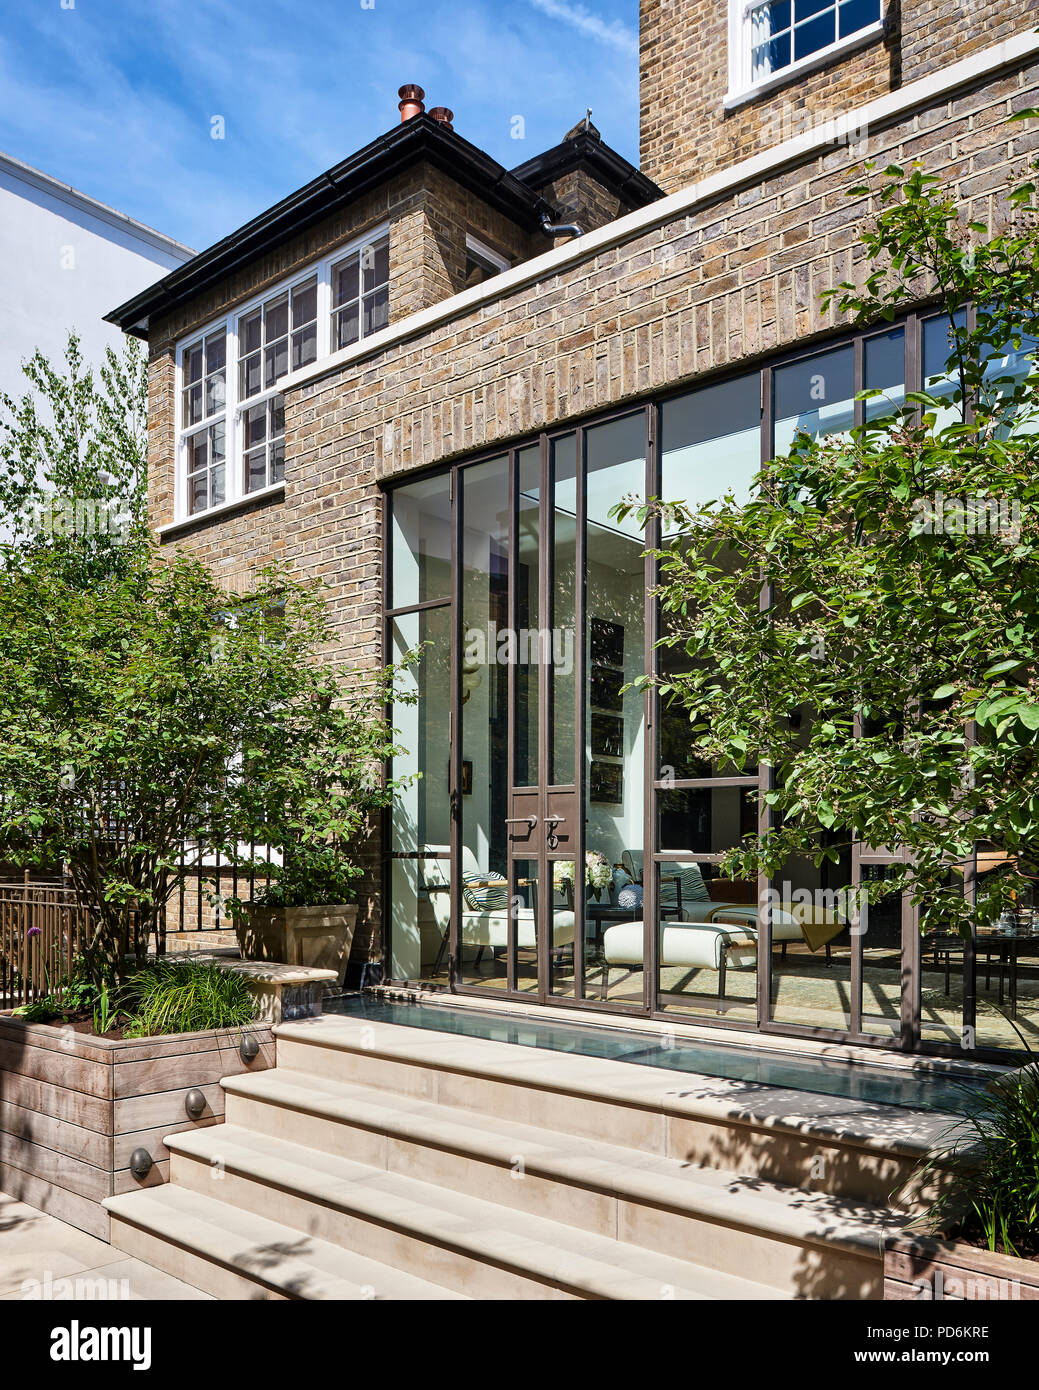 Bouble height backyard exterior of Victorian London home - Stock Image